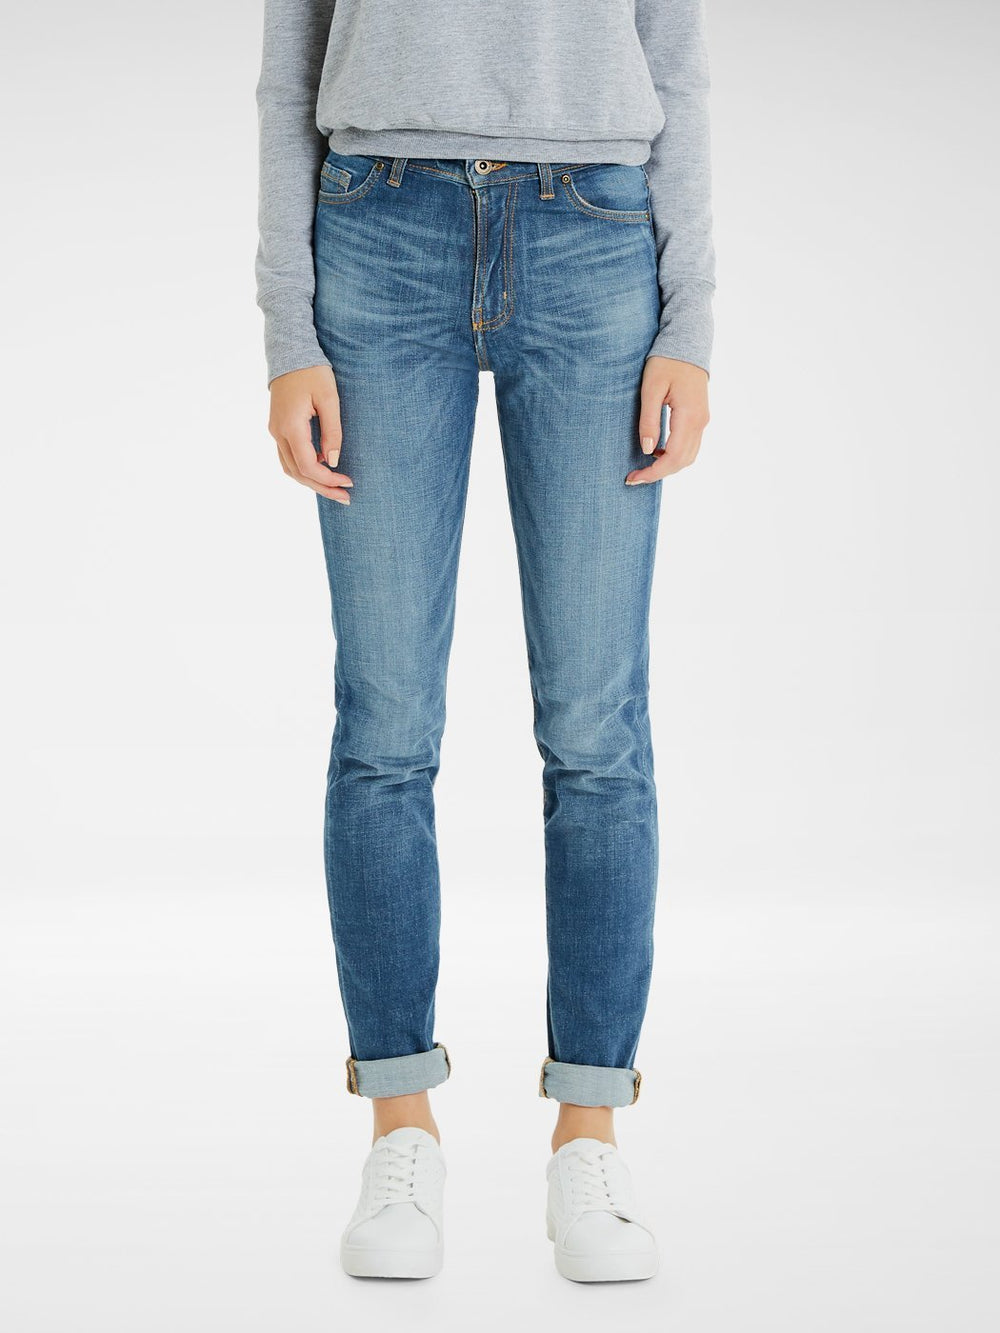 Front view of the Outland Denim Lucy Jean in True Blue